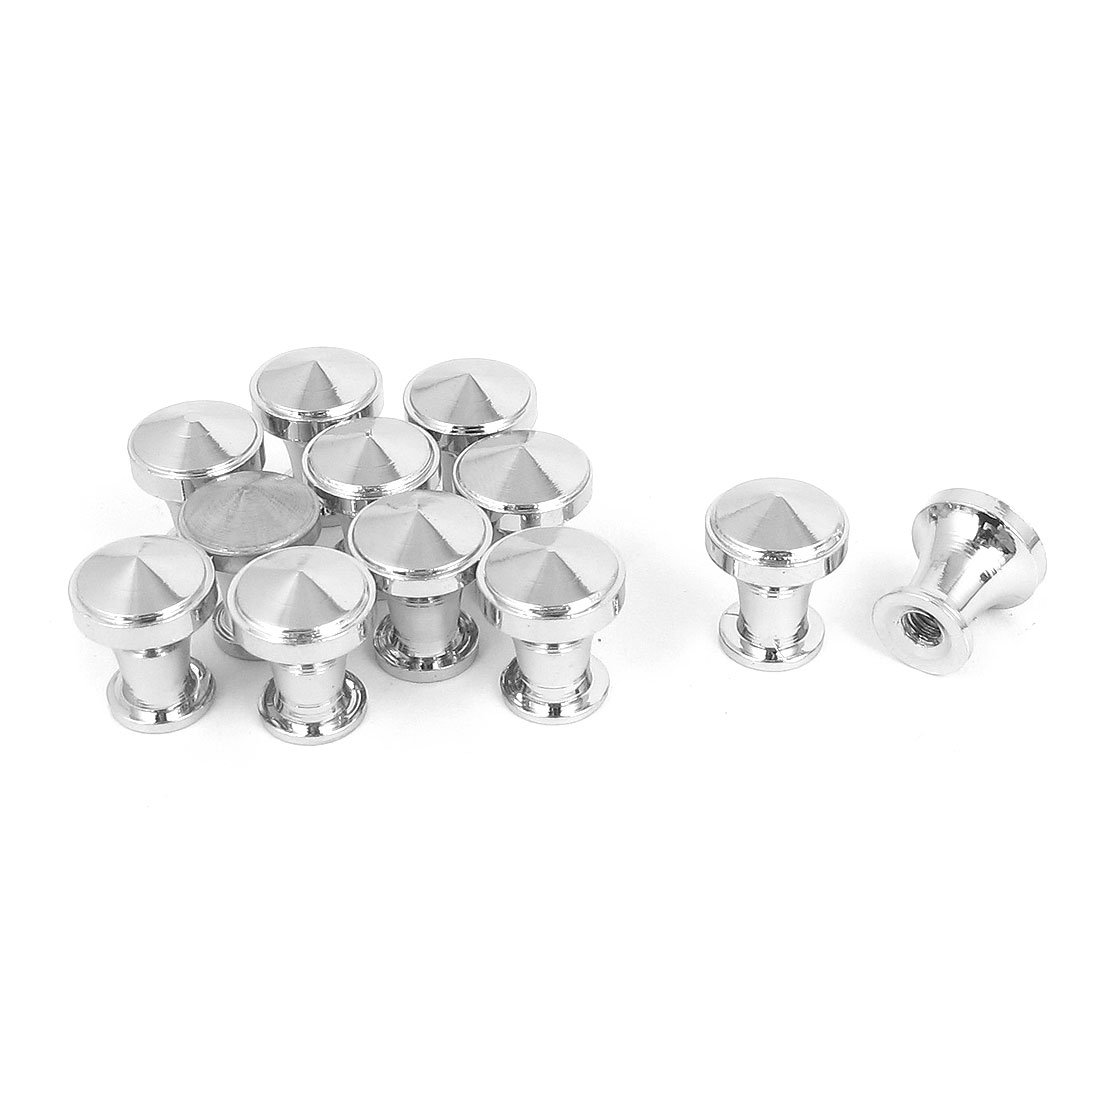 Lannmart 12 Pcs Silver Tone Round Cupboard Drawer Metal Pull Knob Handle Grip 12Mm Dia